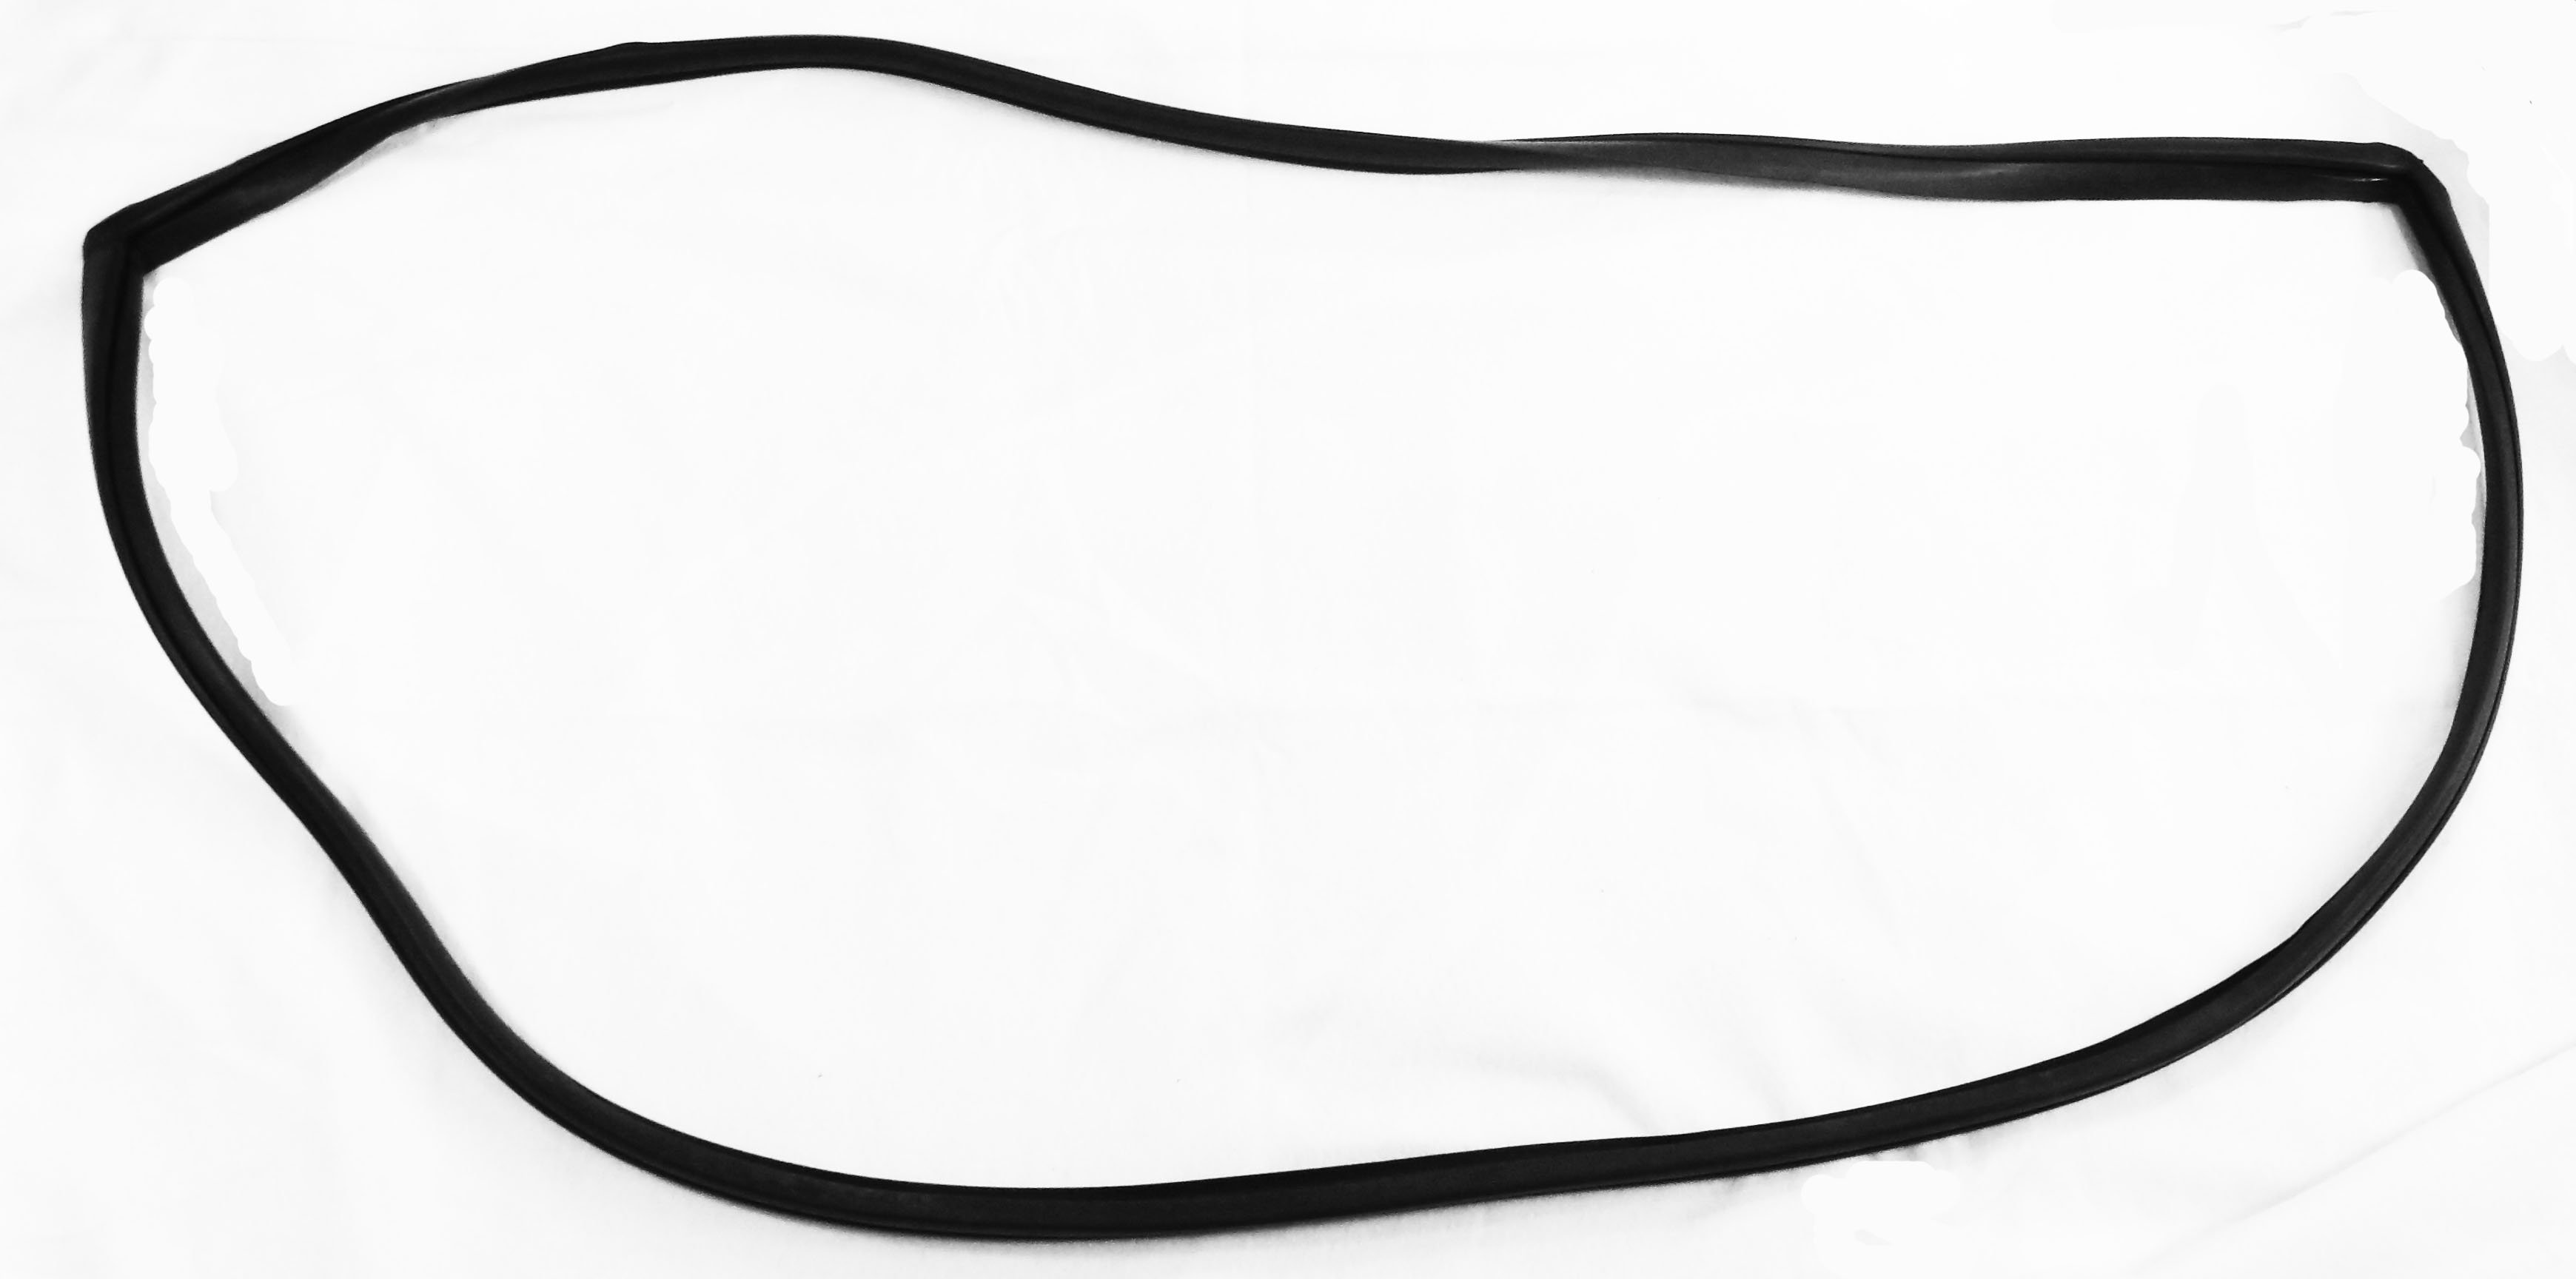 Windshield Channel For 1941-1948 Chevy 2 Or 4 Door Sedan.